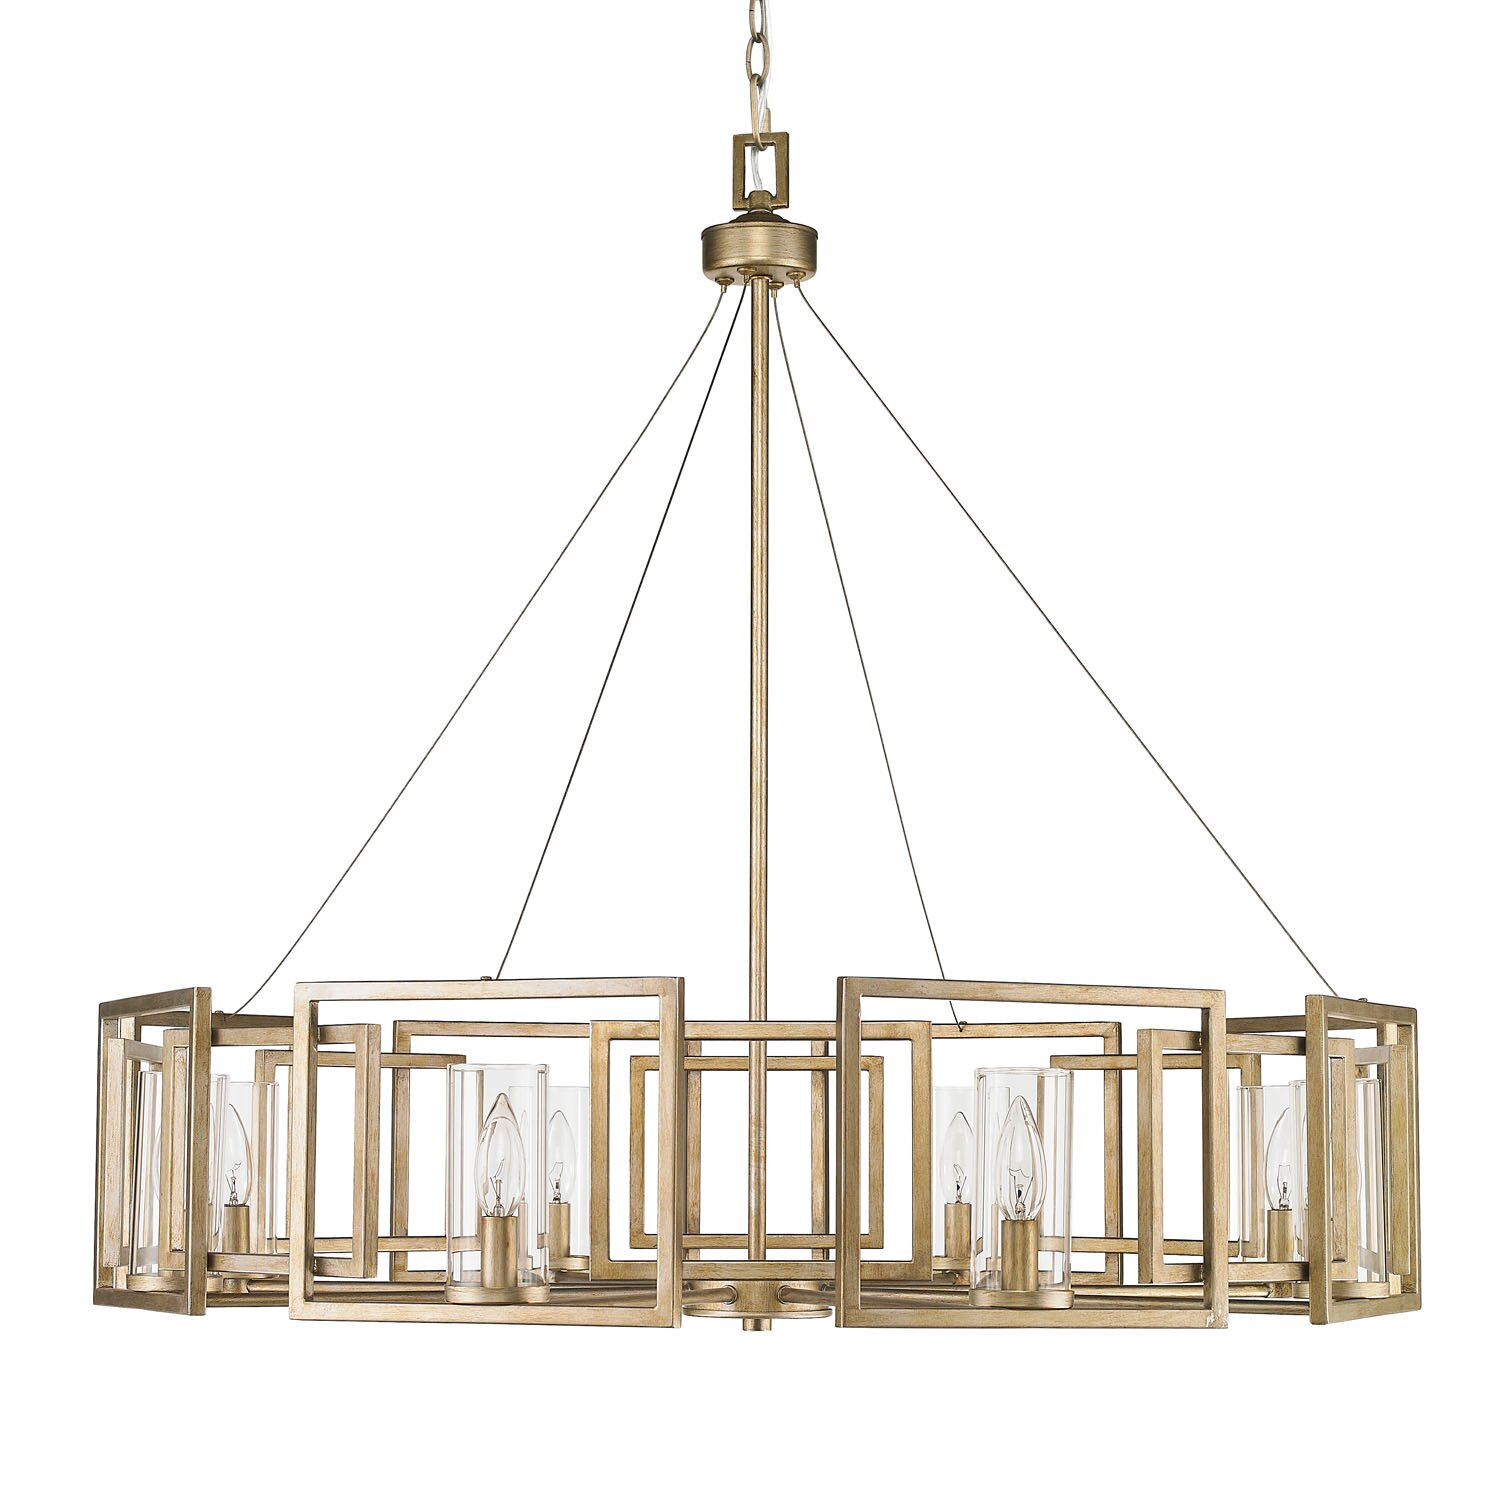 Brayden studio politte 9 light drum chandelier reviews wayfair - Lighting and chandeliers ...